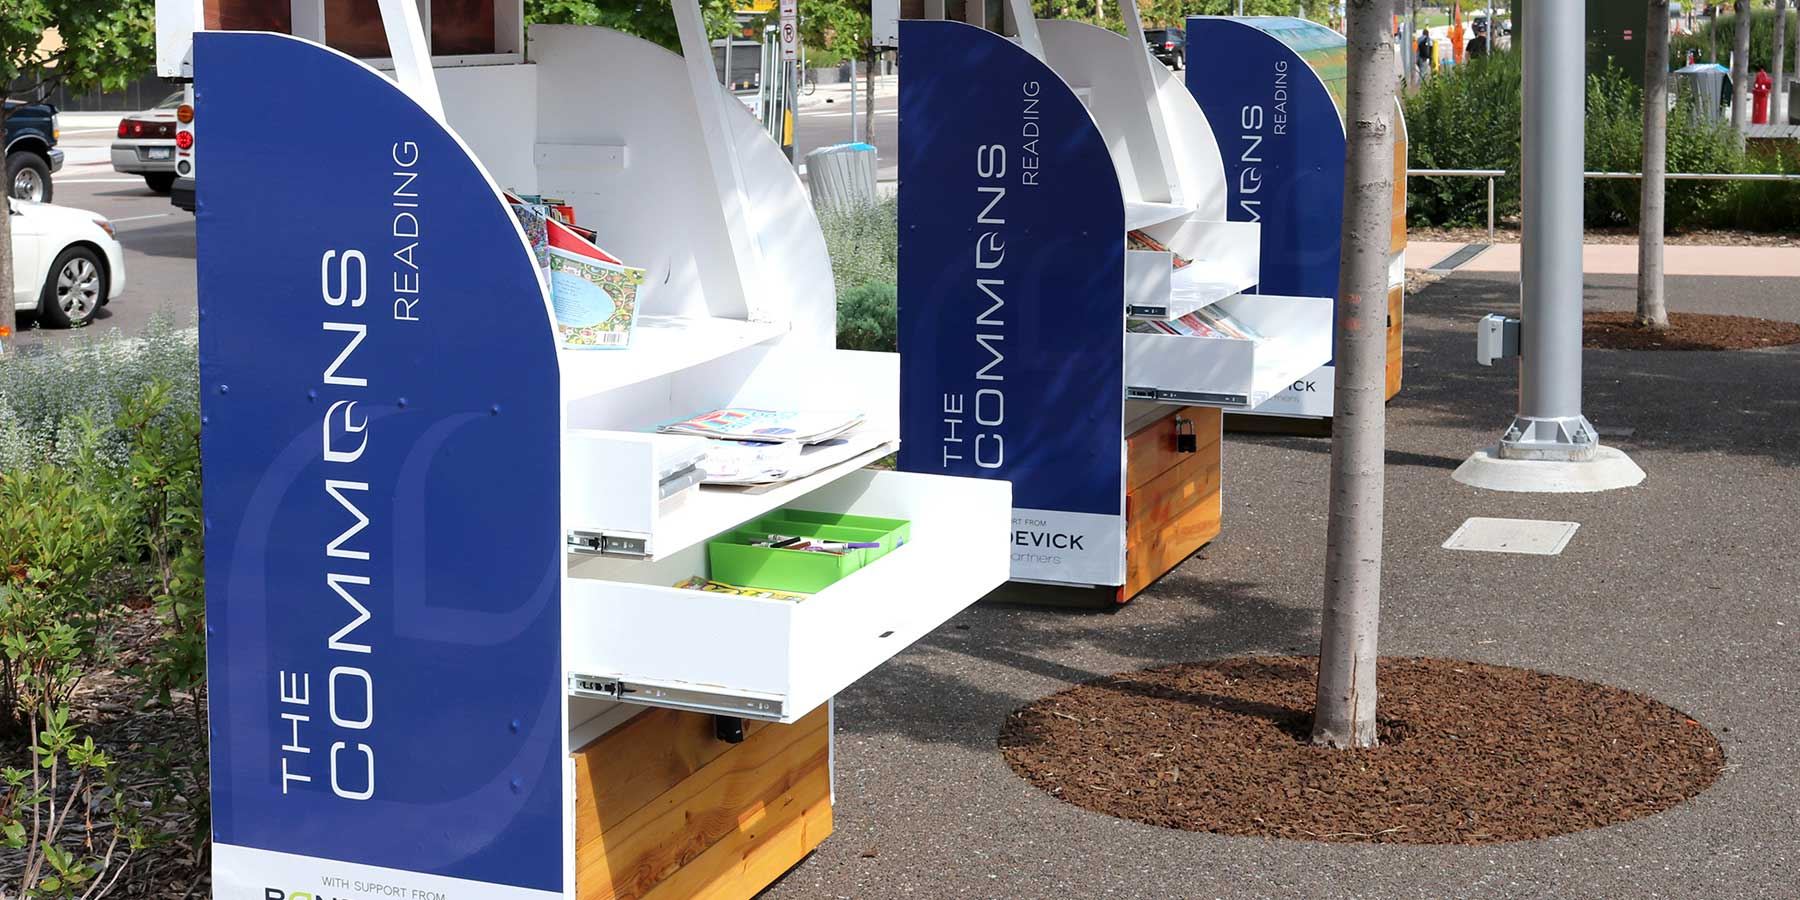 A park kiosk with the Commons logo in Minneapolis